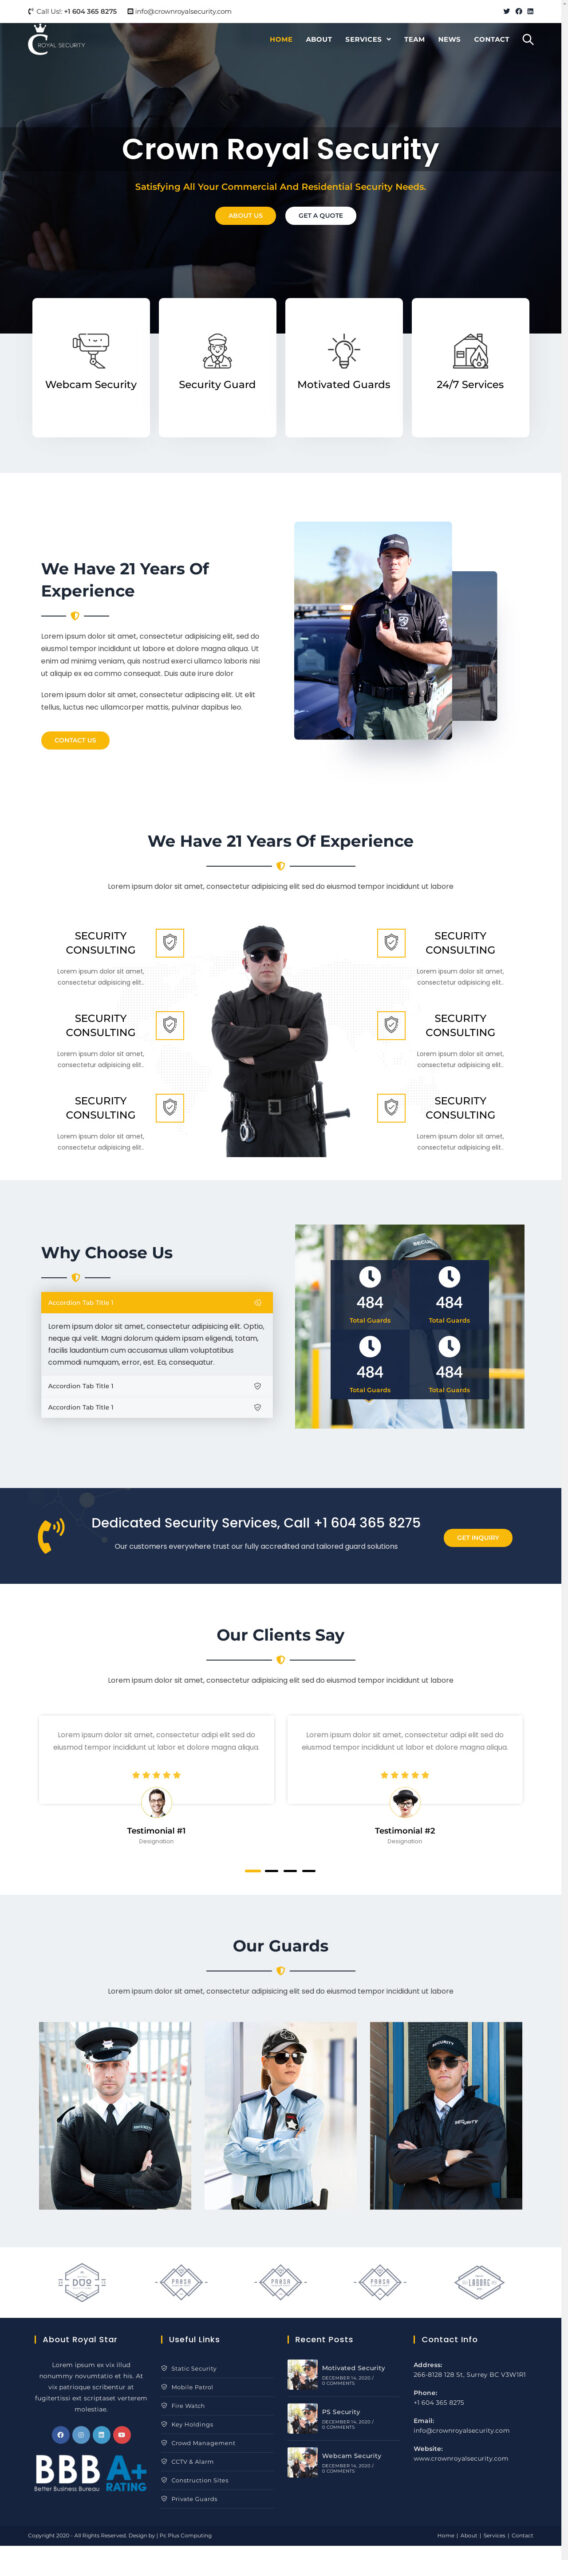 crown-security-website-design